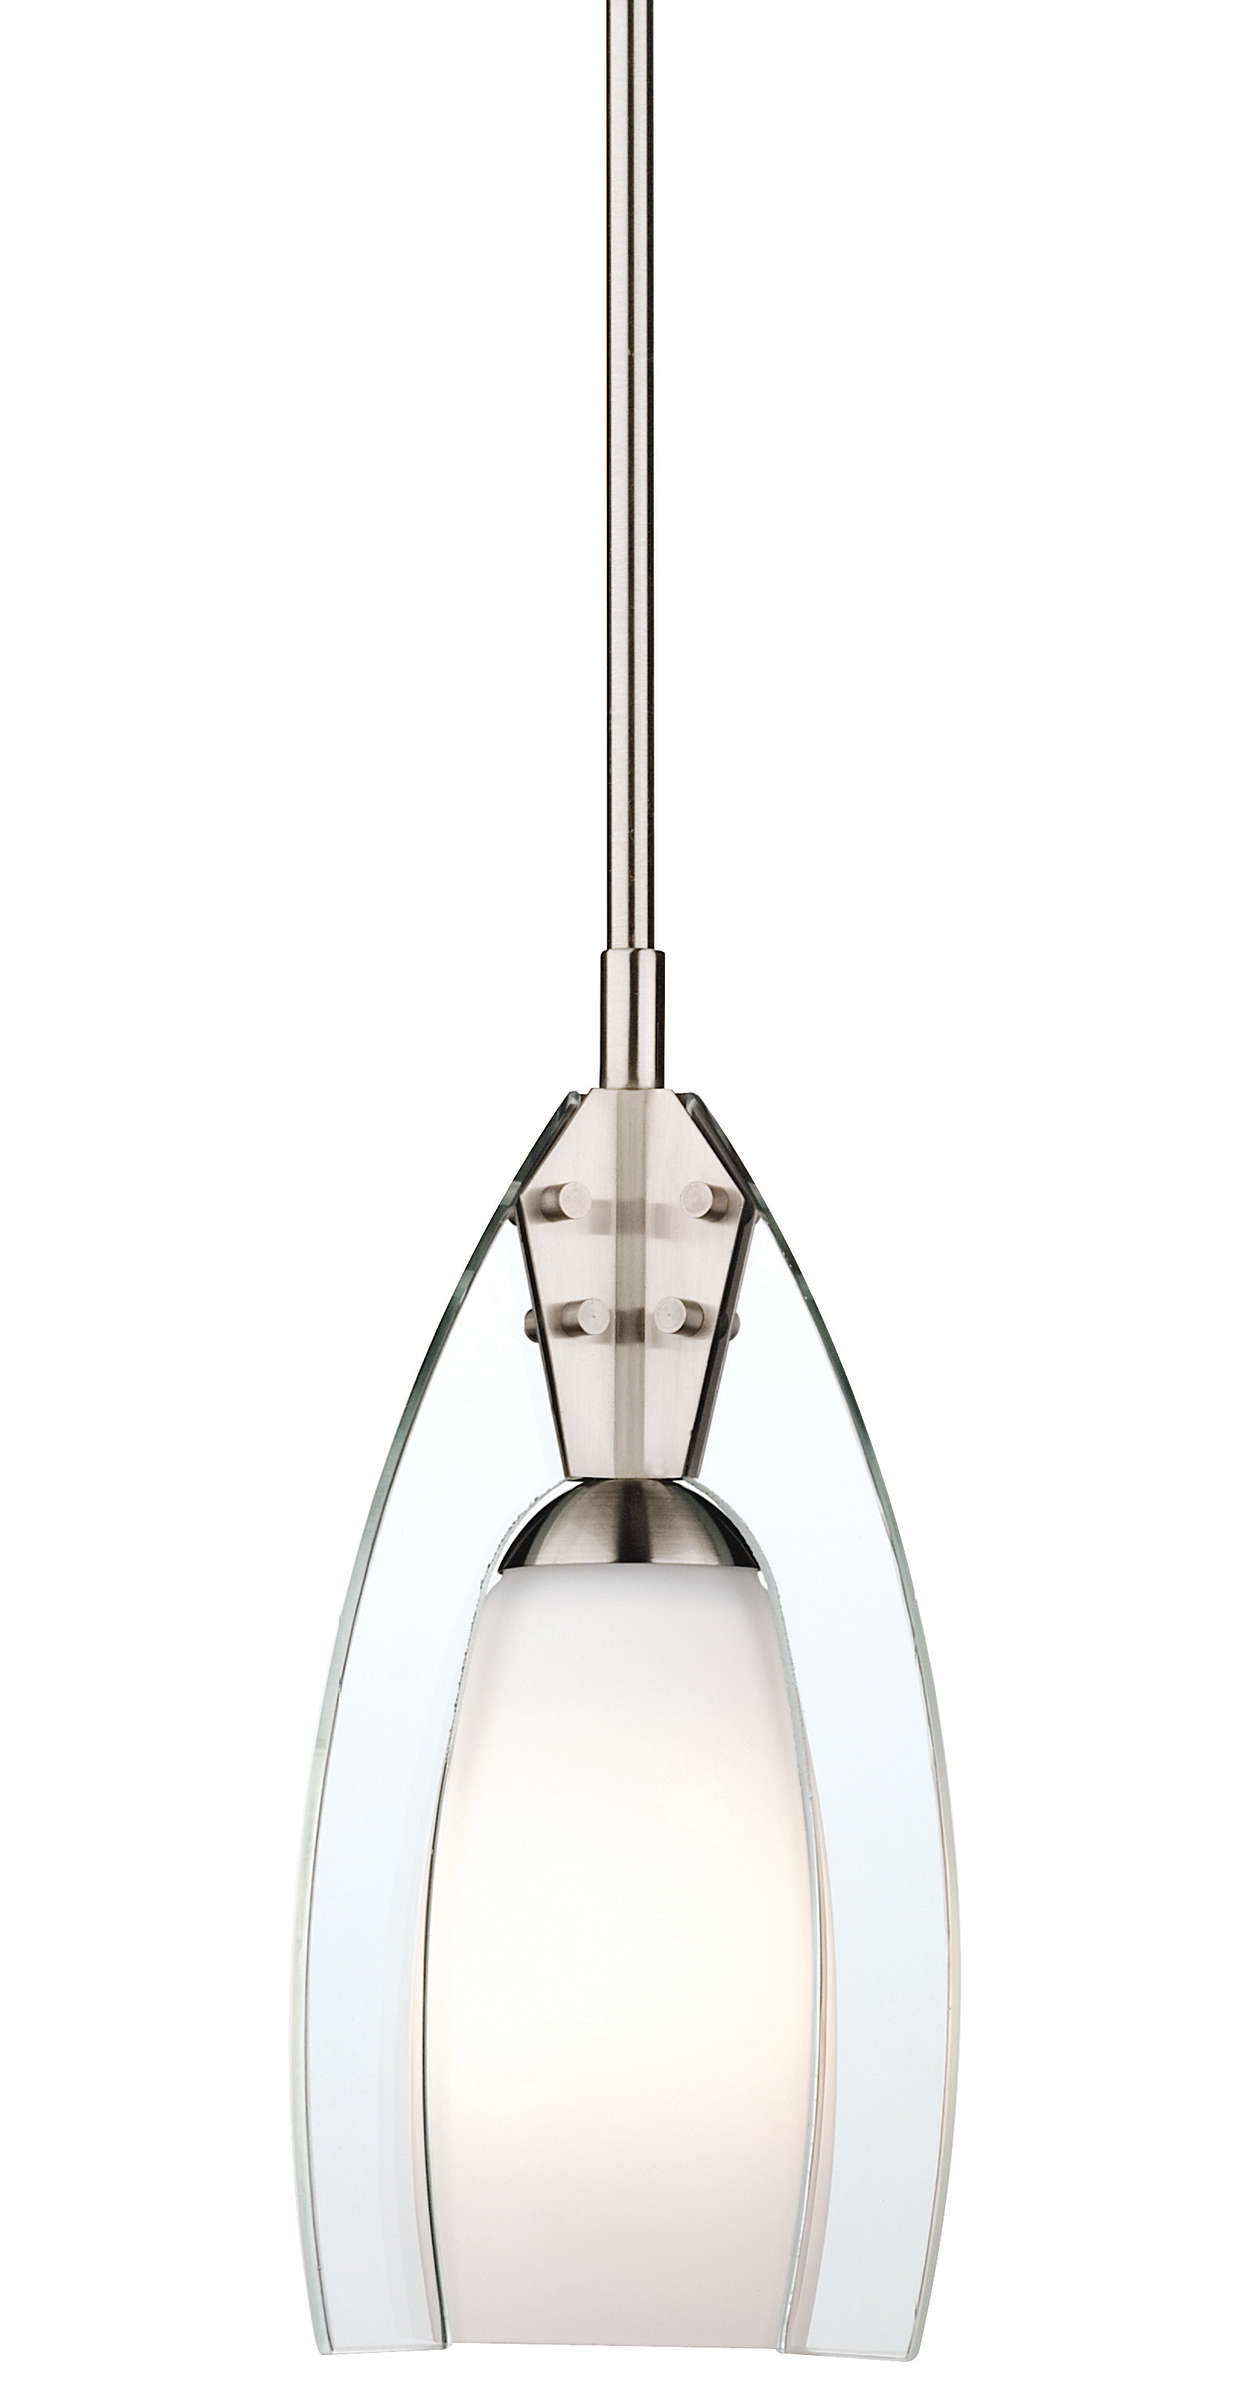 Mini Morgan 1-light Pendant in Satin Nickel finish